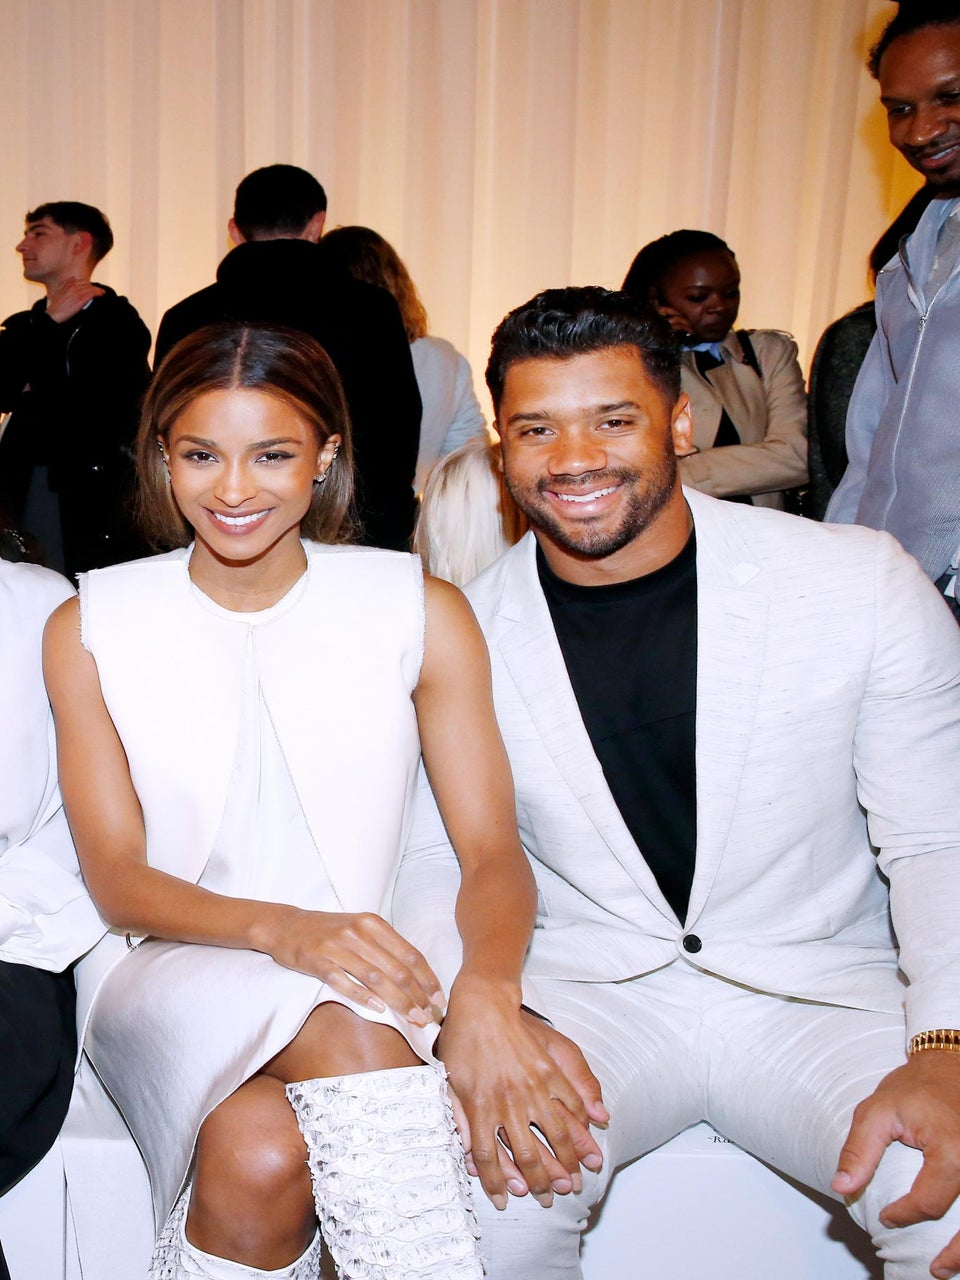 Ciara's Fans Had the Most Hilarious (and Petty) Reactions to Her Engagement